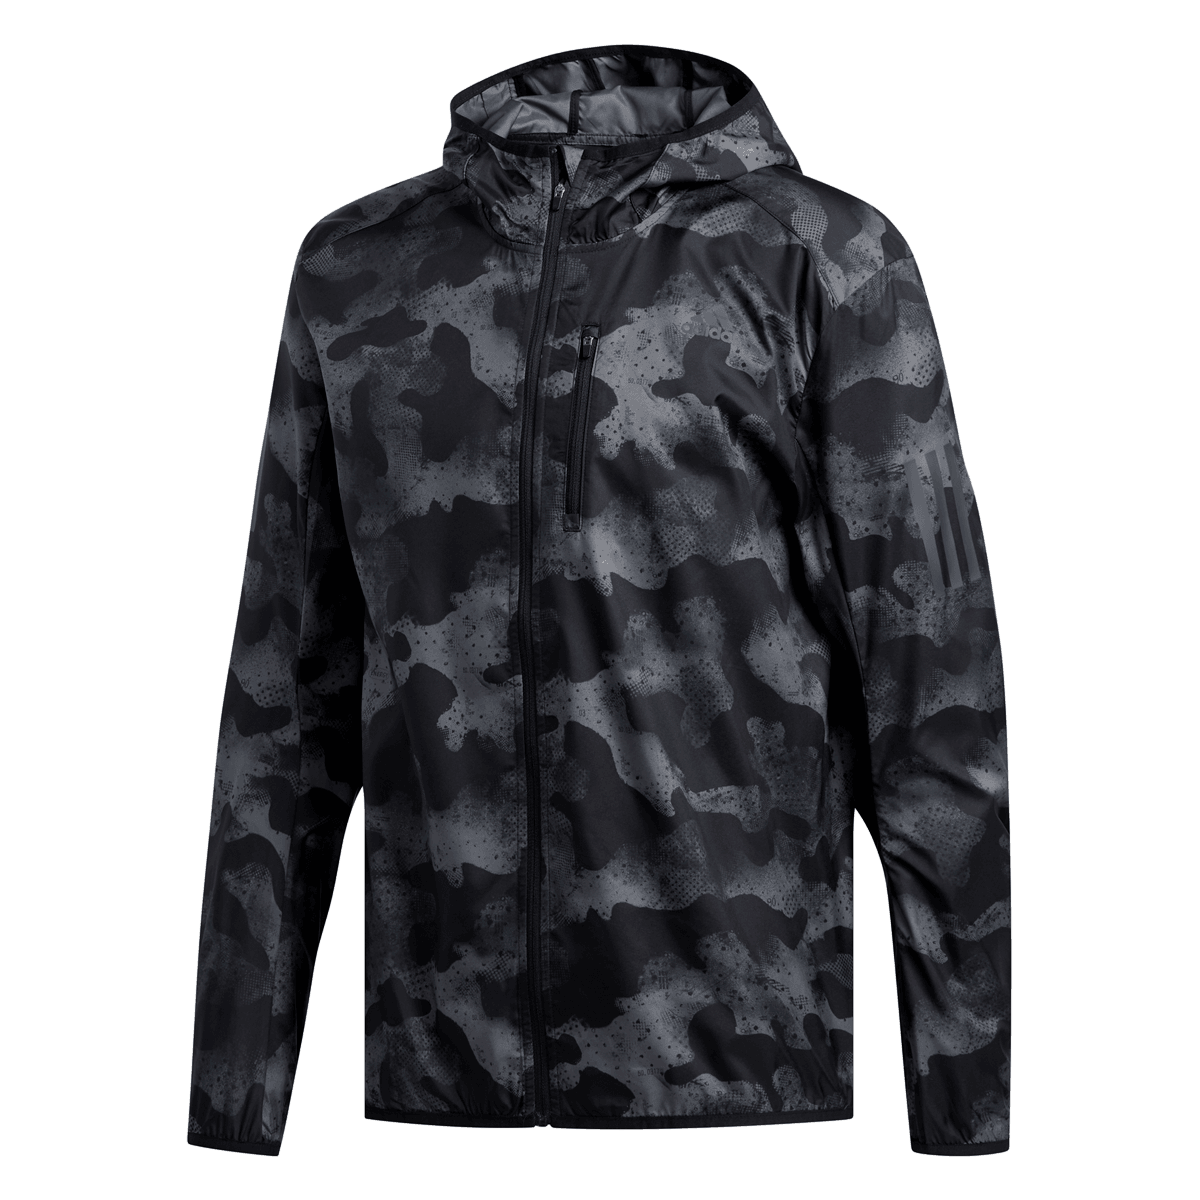 adidas Own the Run Camo Jacke Herren grauschwarz